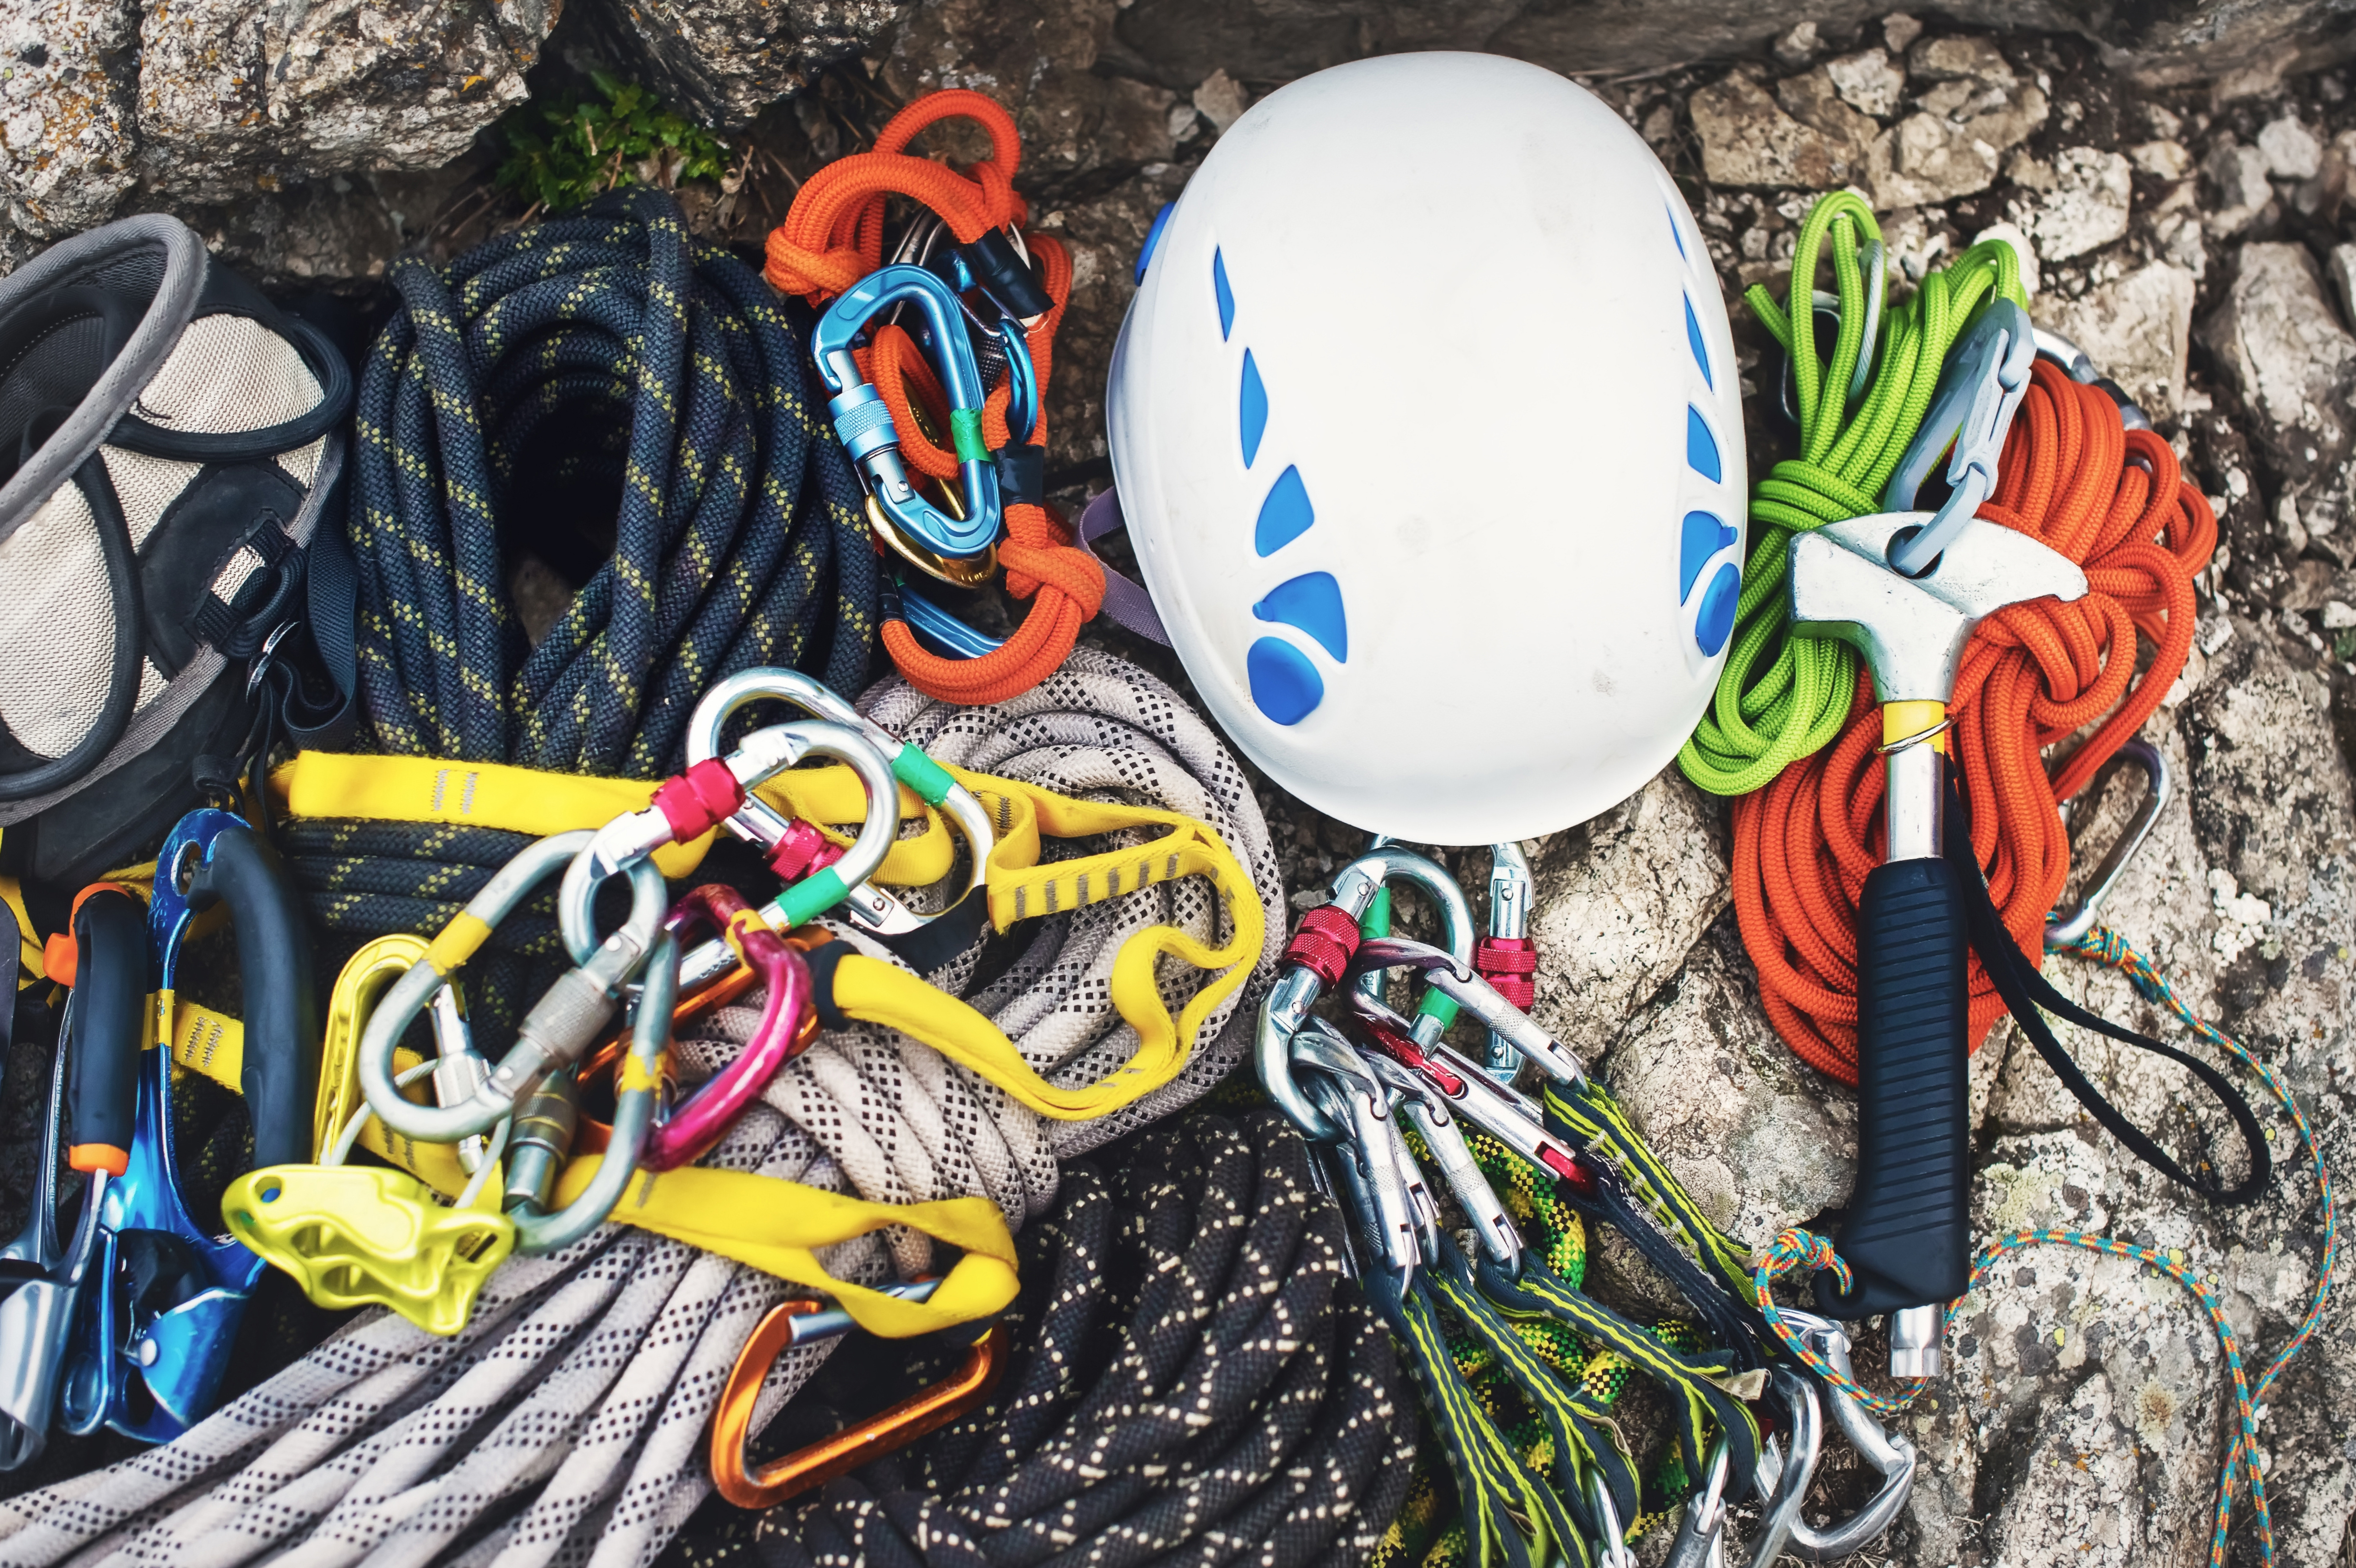 Can You Rappel On A Dynamic Rope? Static vs. Dynamic Rope for Rappelling